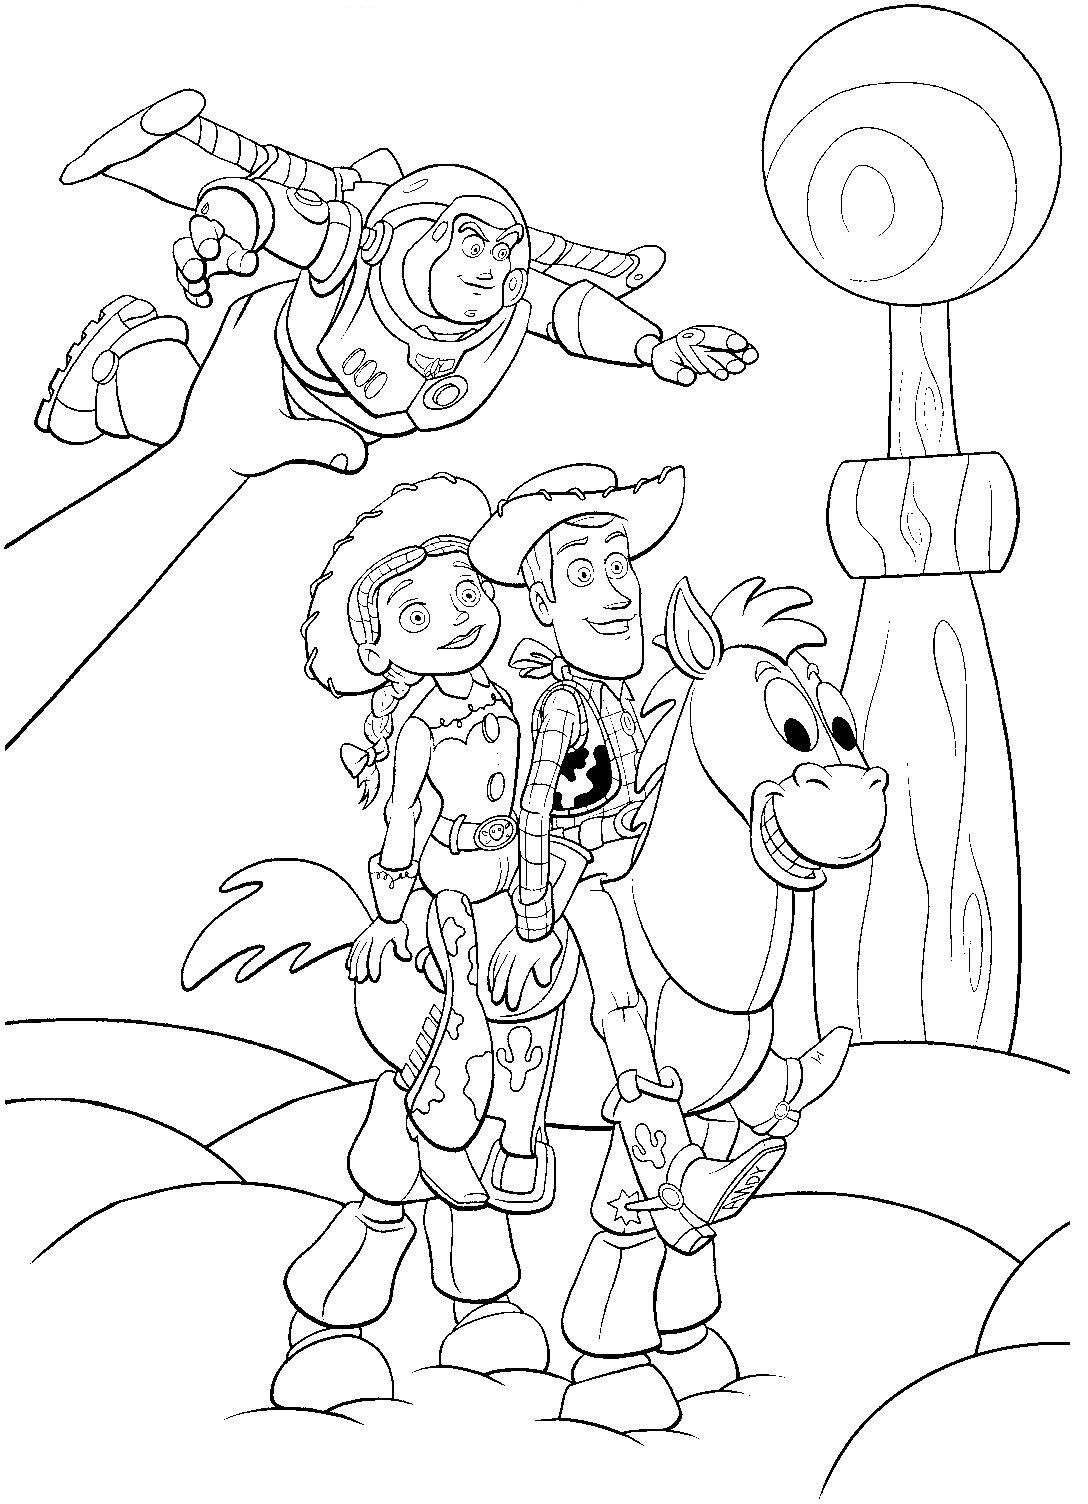 Toy Story Coloring Page Disney Coloring Pages Cartoon Coloring